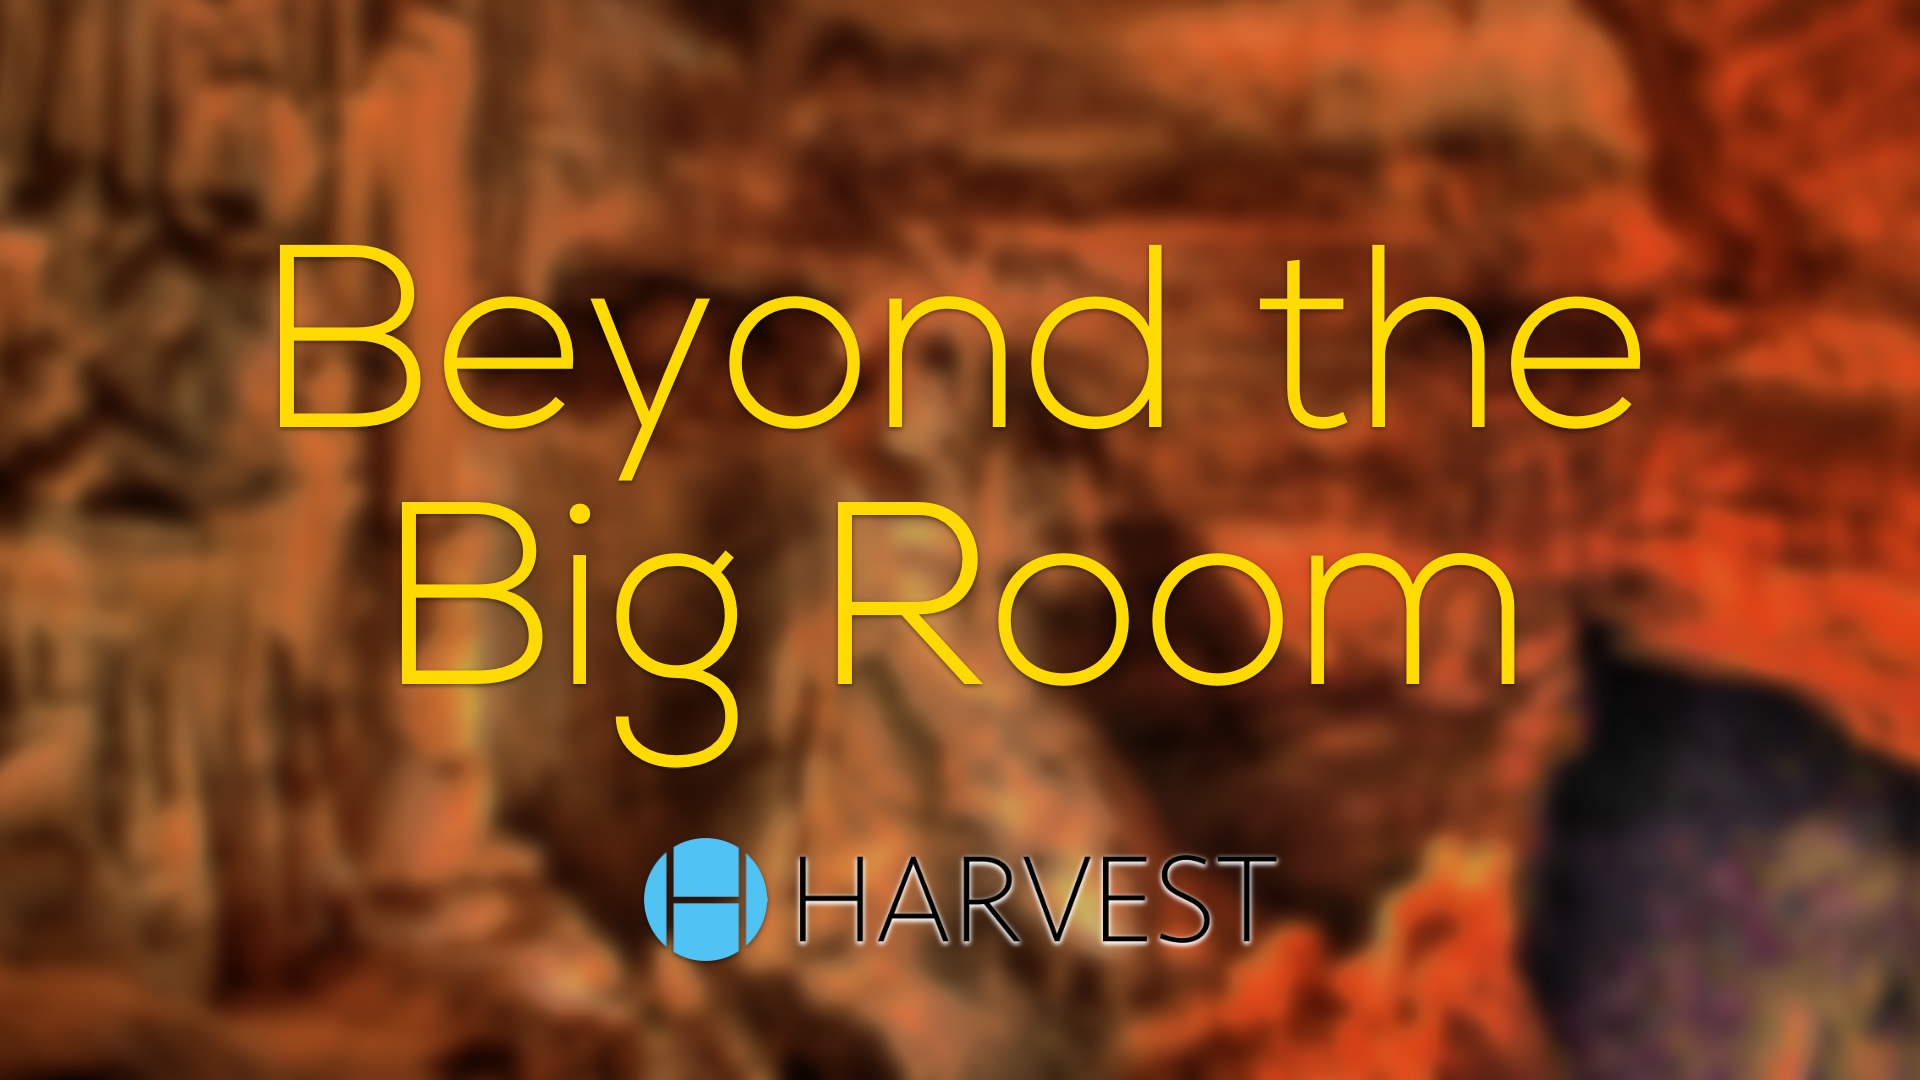 Beyond the Big Room